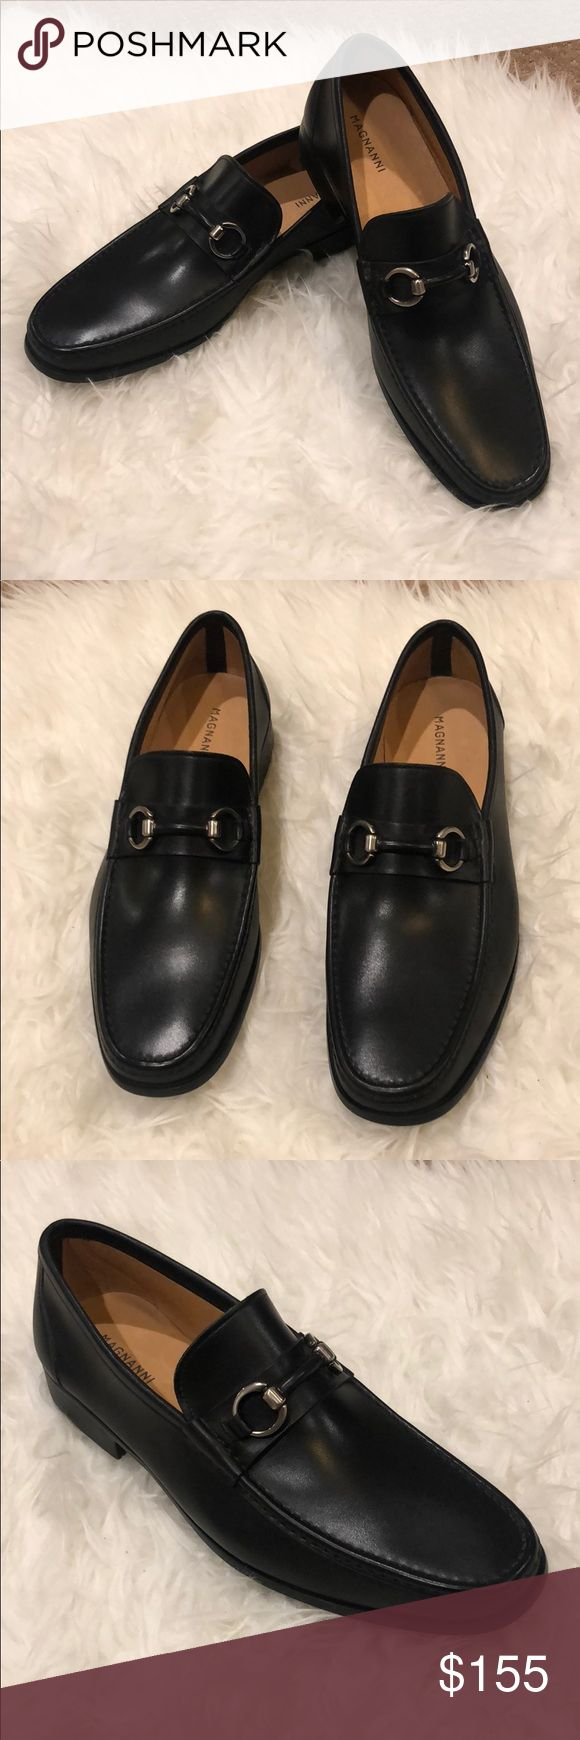 NWOT Magnanni handcrafted beautiful leather shoes Never worn, beautifully handcr...